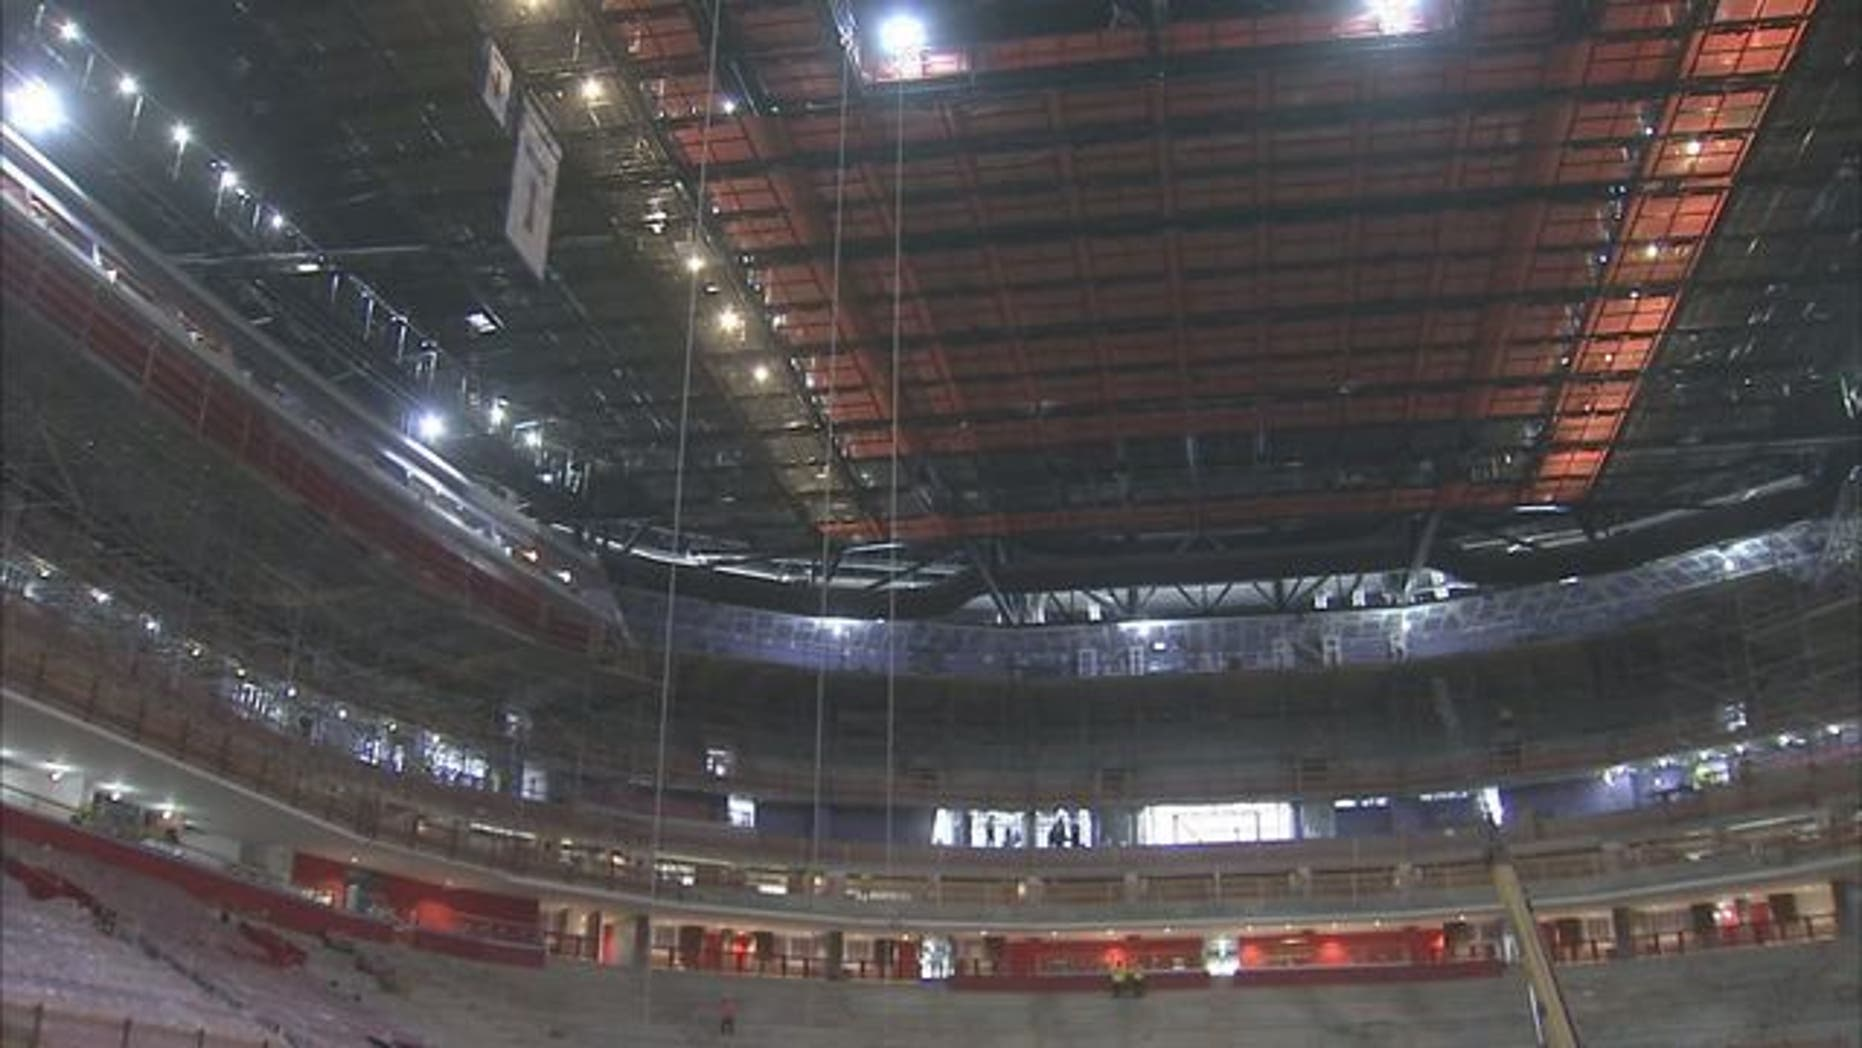 The worker fell to his death while working at Little Caesars Arena in Detroit Wednesday morning, authorities said. (Fox 2)